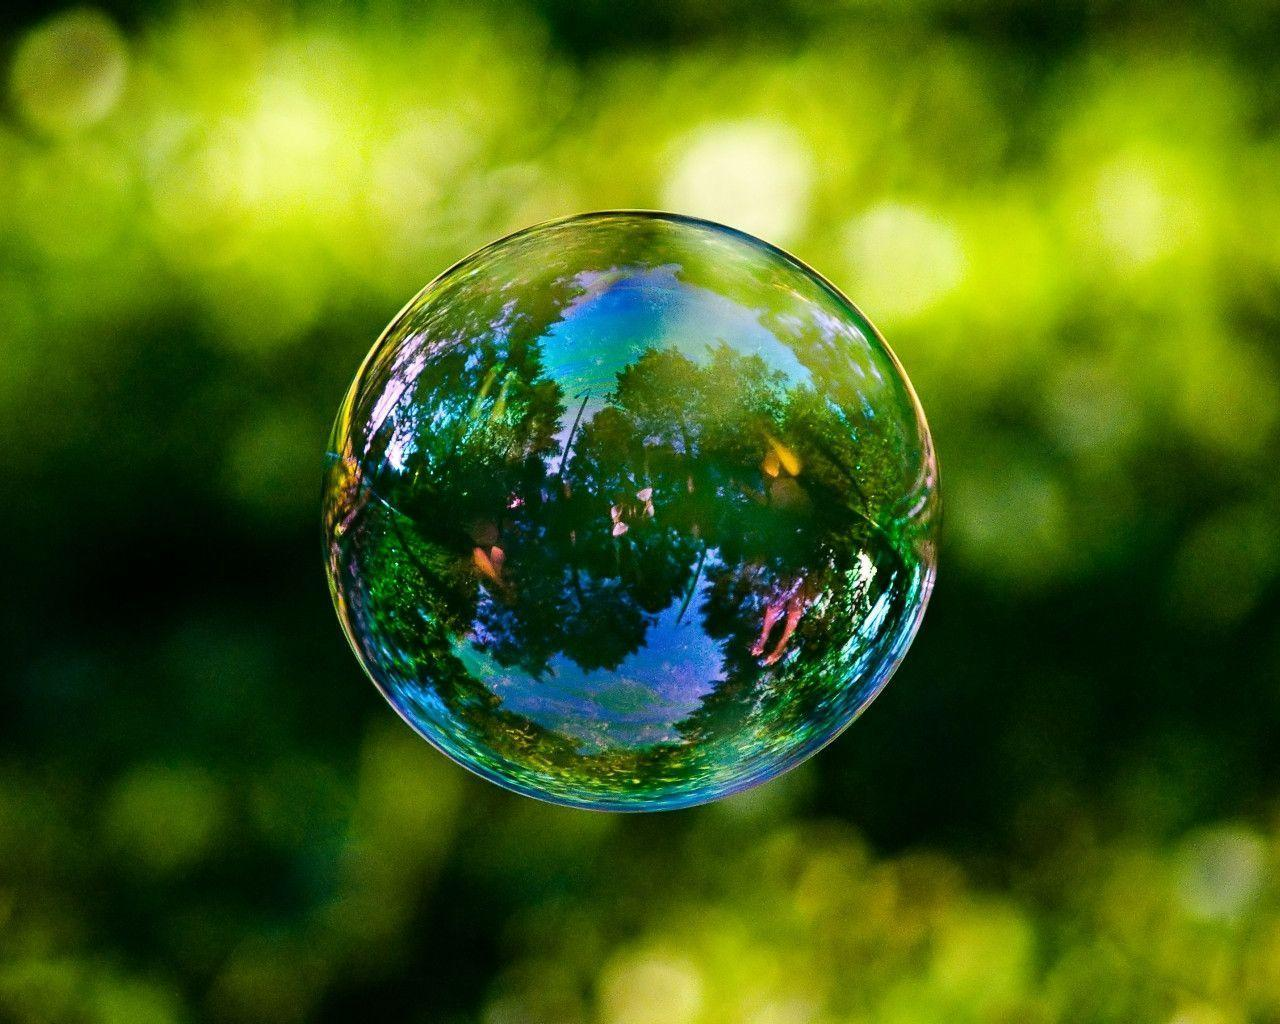 Wonderful wallpapers with soap bubble